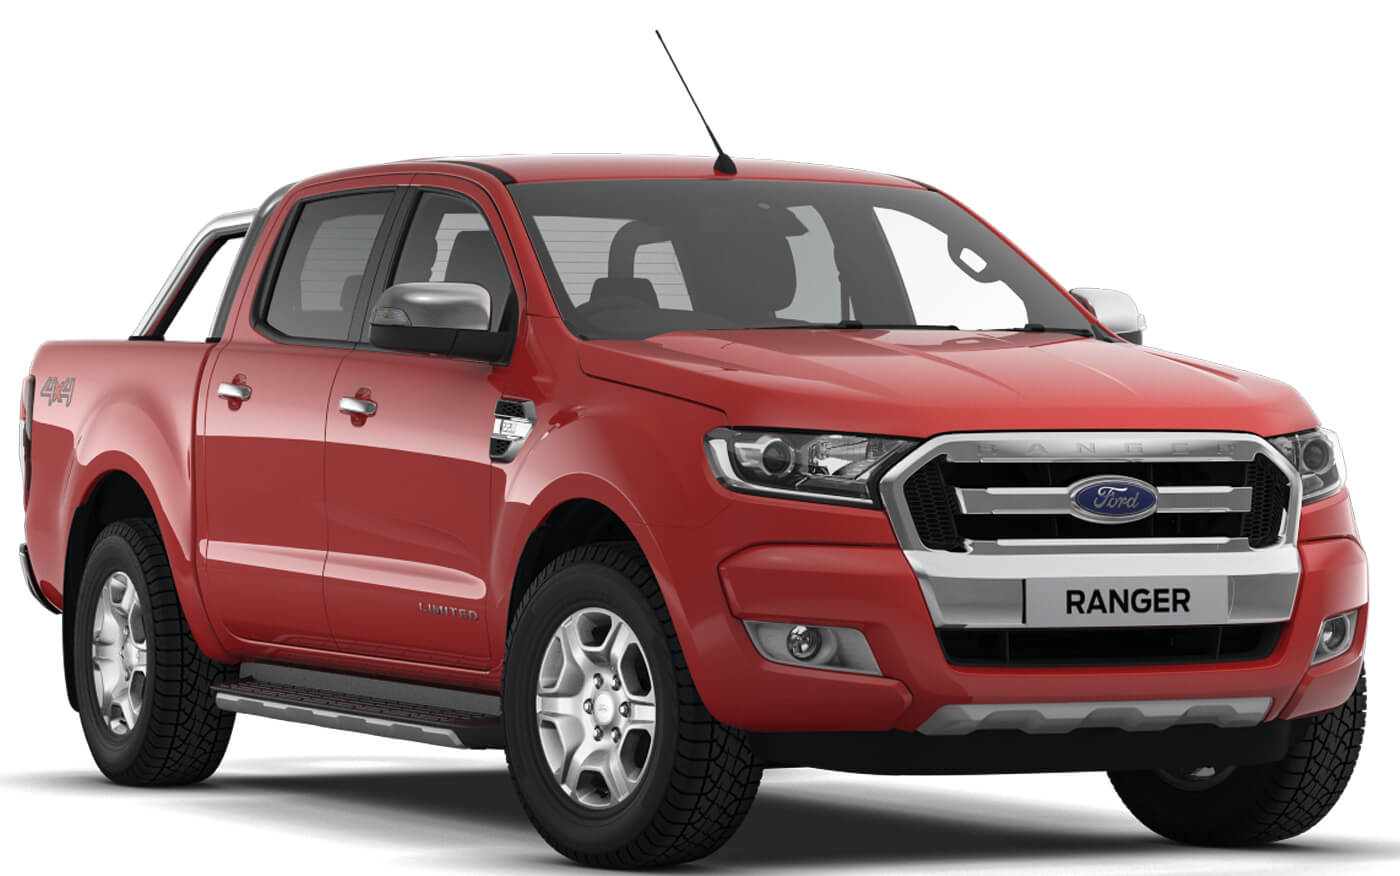 ford ranger 2 2 tdci double cab 4x4 limited 2 160ps auto for sale. Black Bedroom Furniture Sets. Home Design Ideas